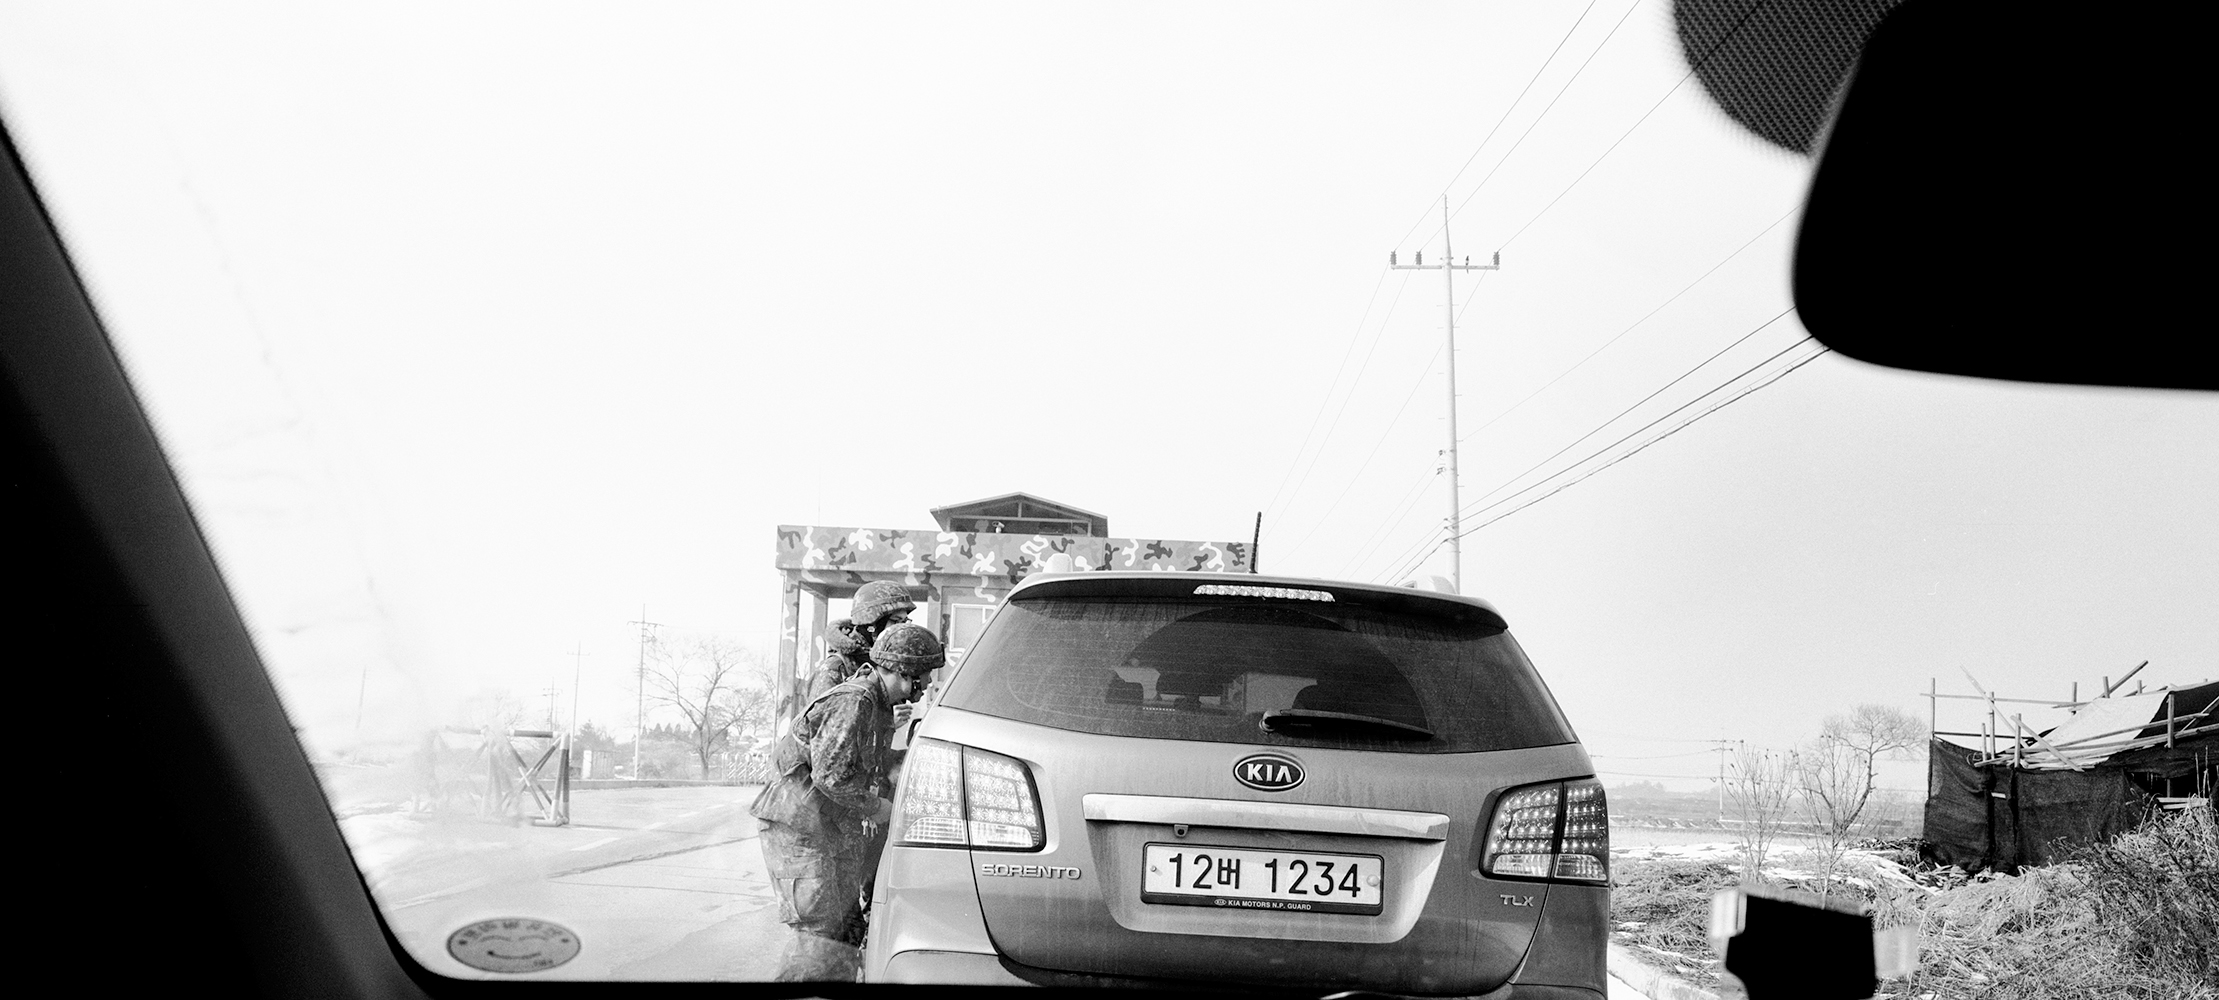 Jinhyun Cha,  Car entering restricted area for civilians,  2014